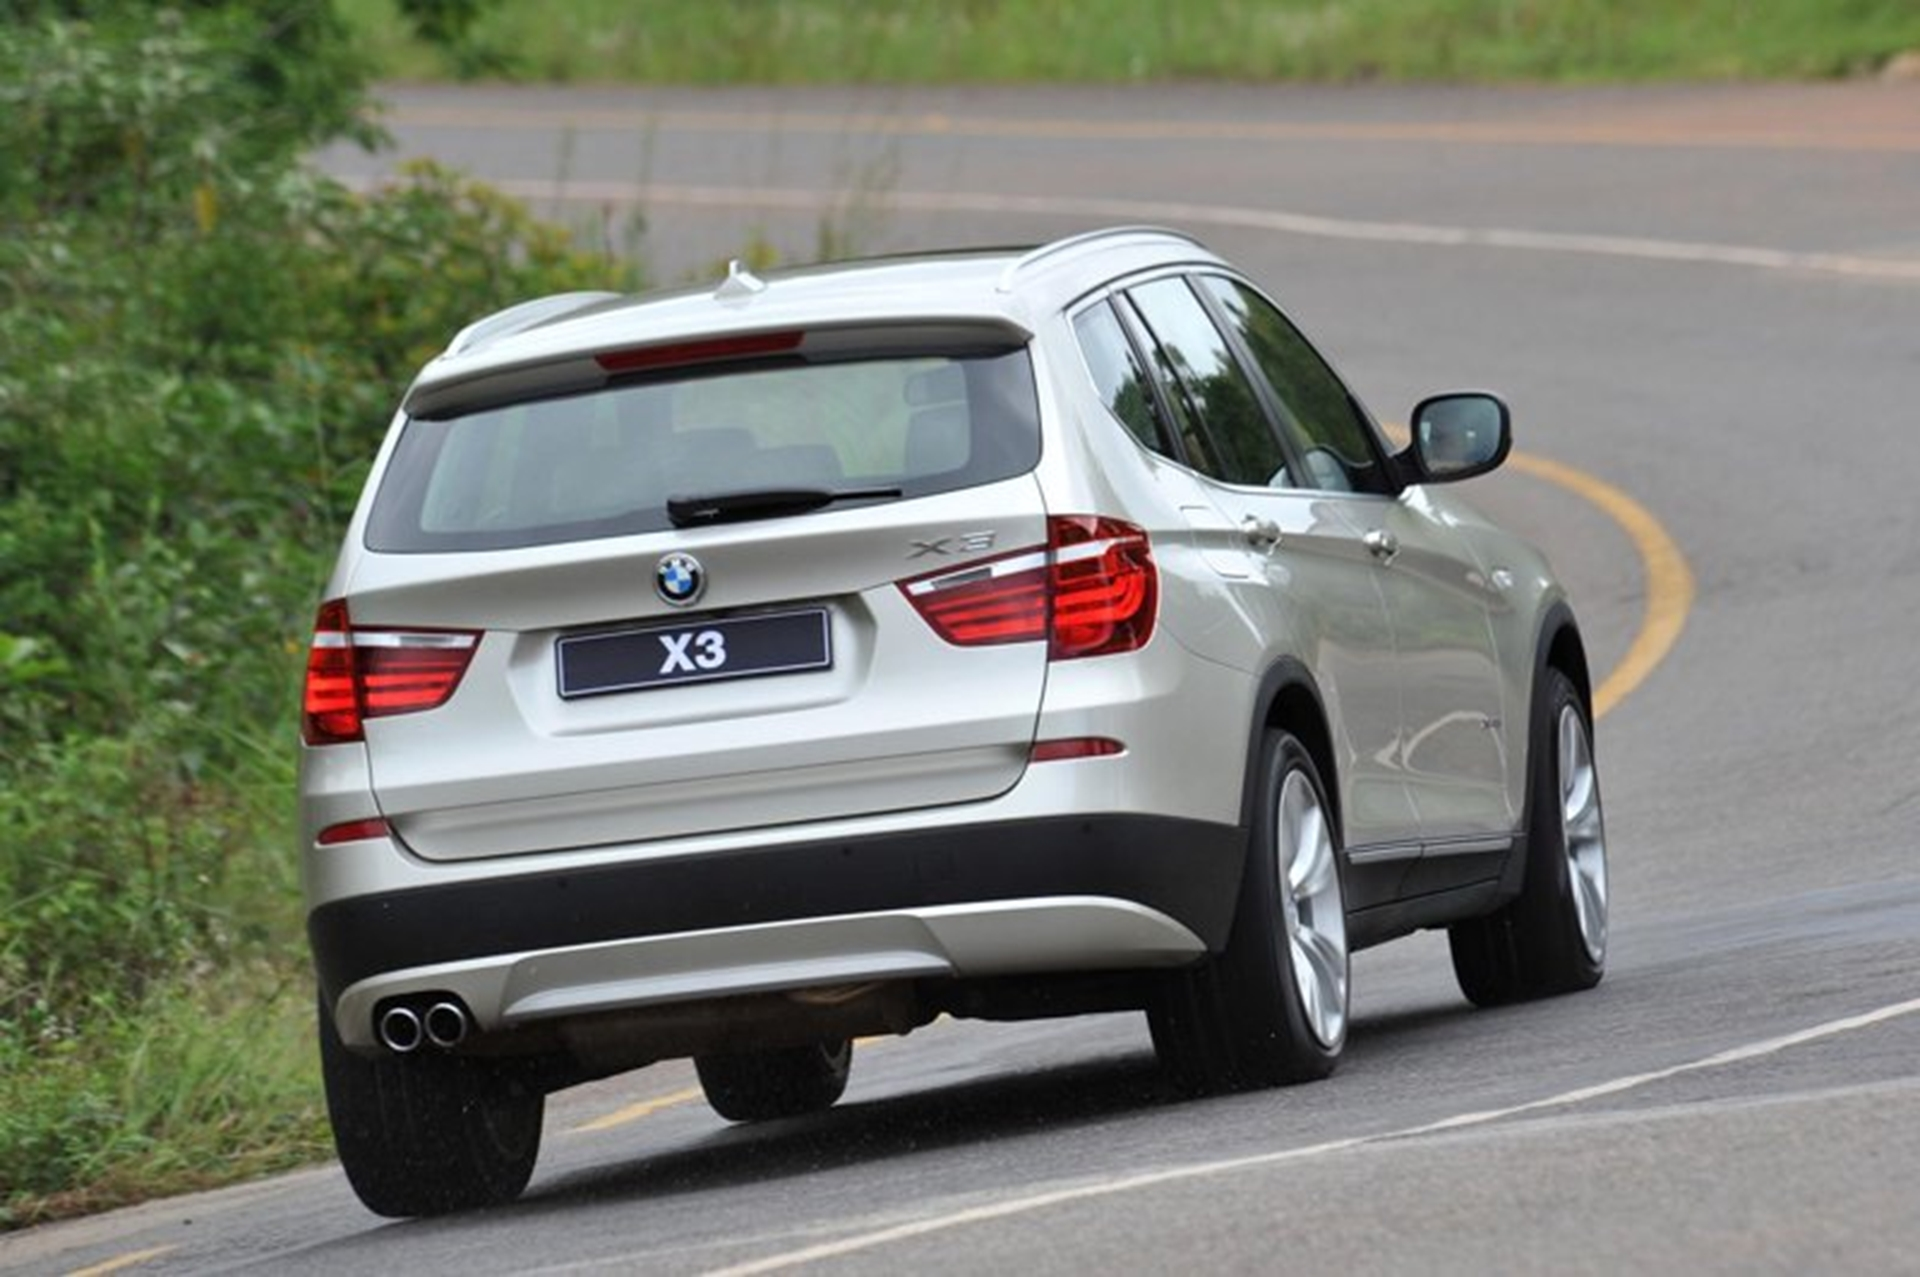 BMW X3 Rear View